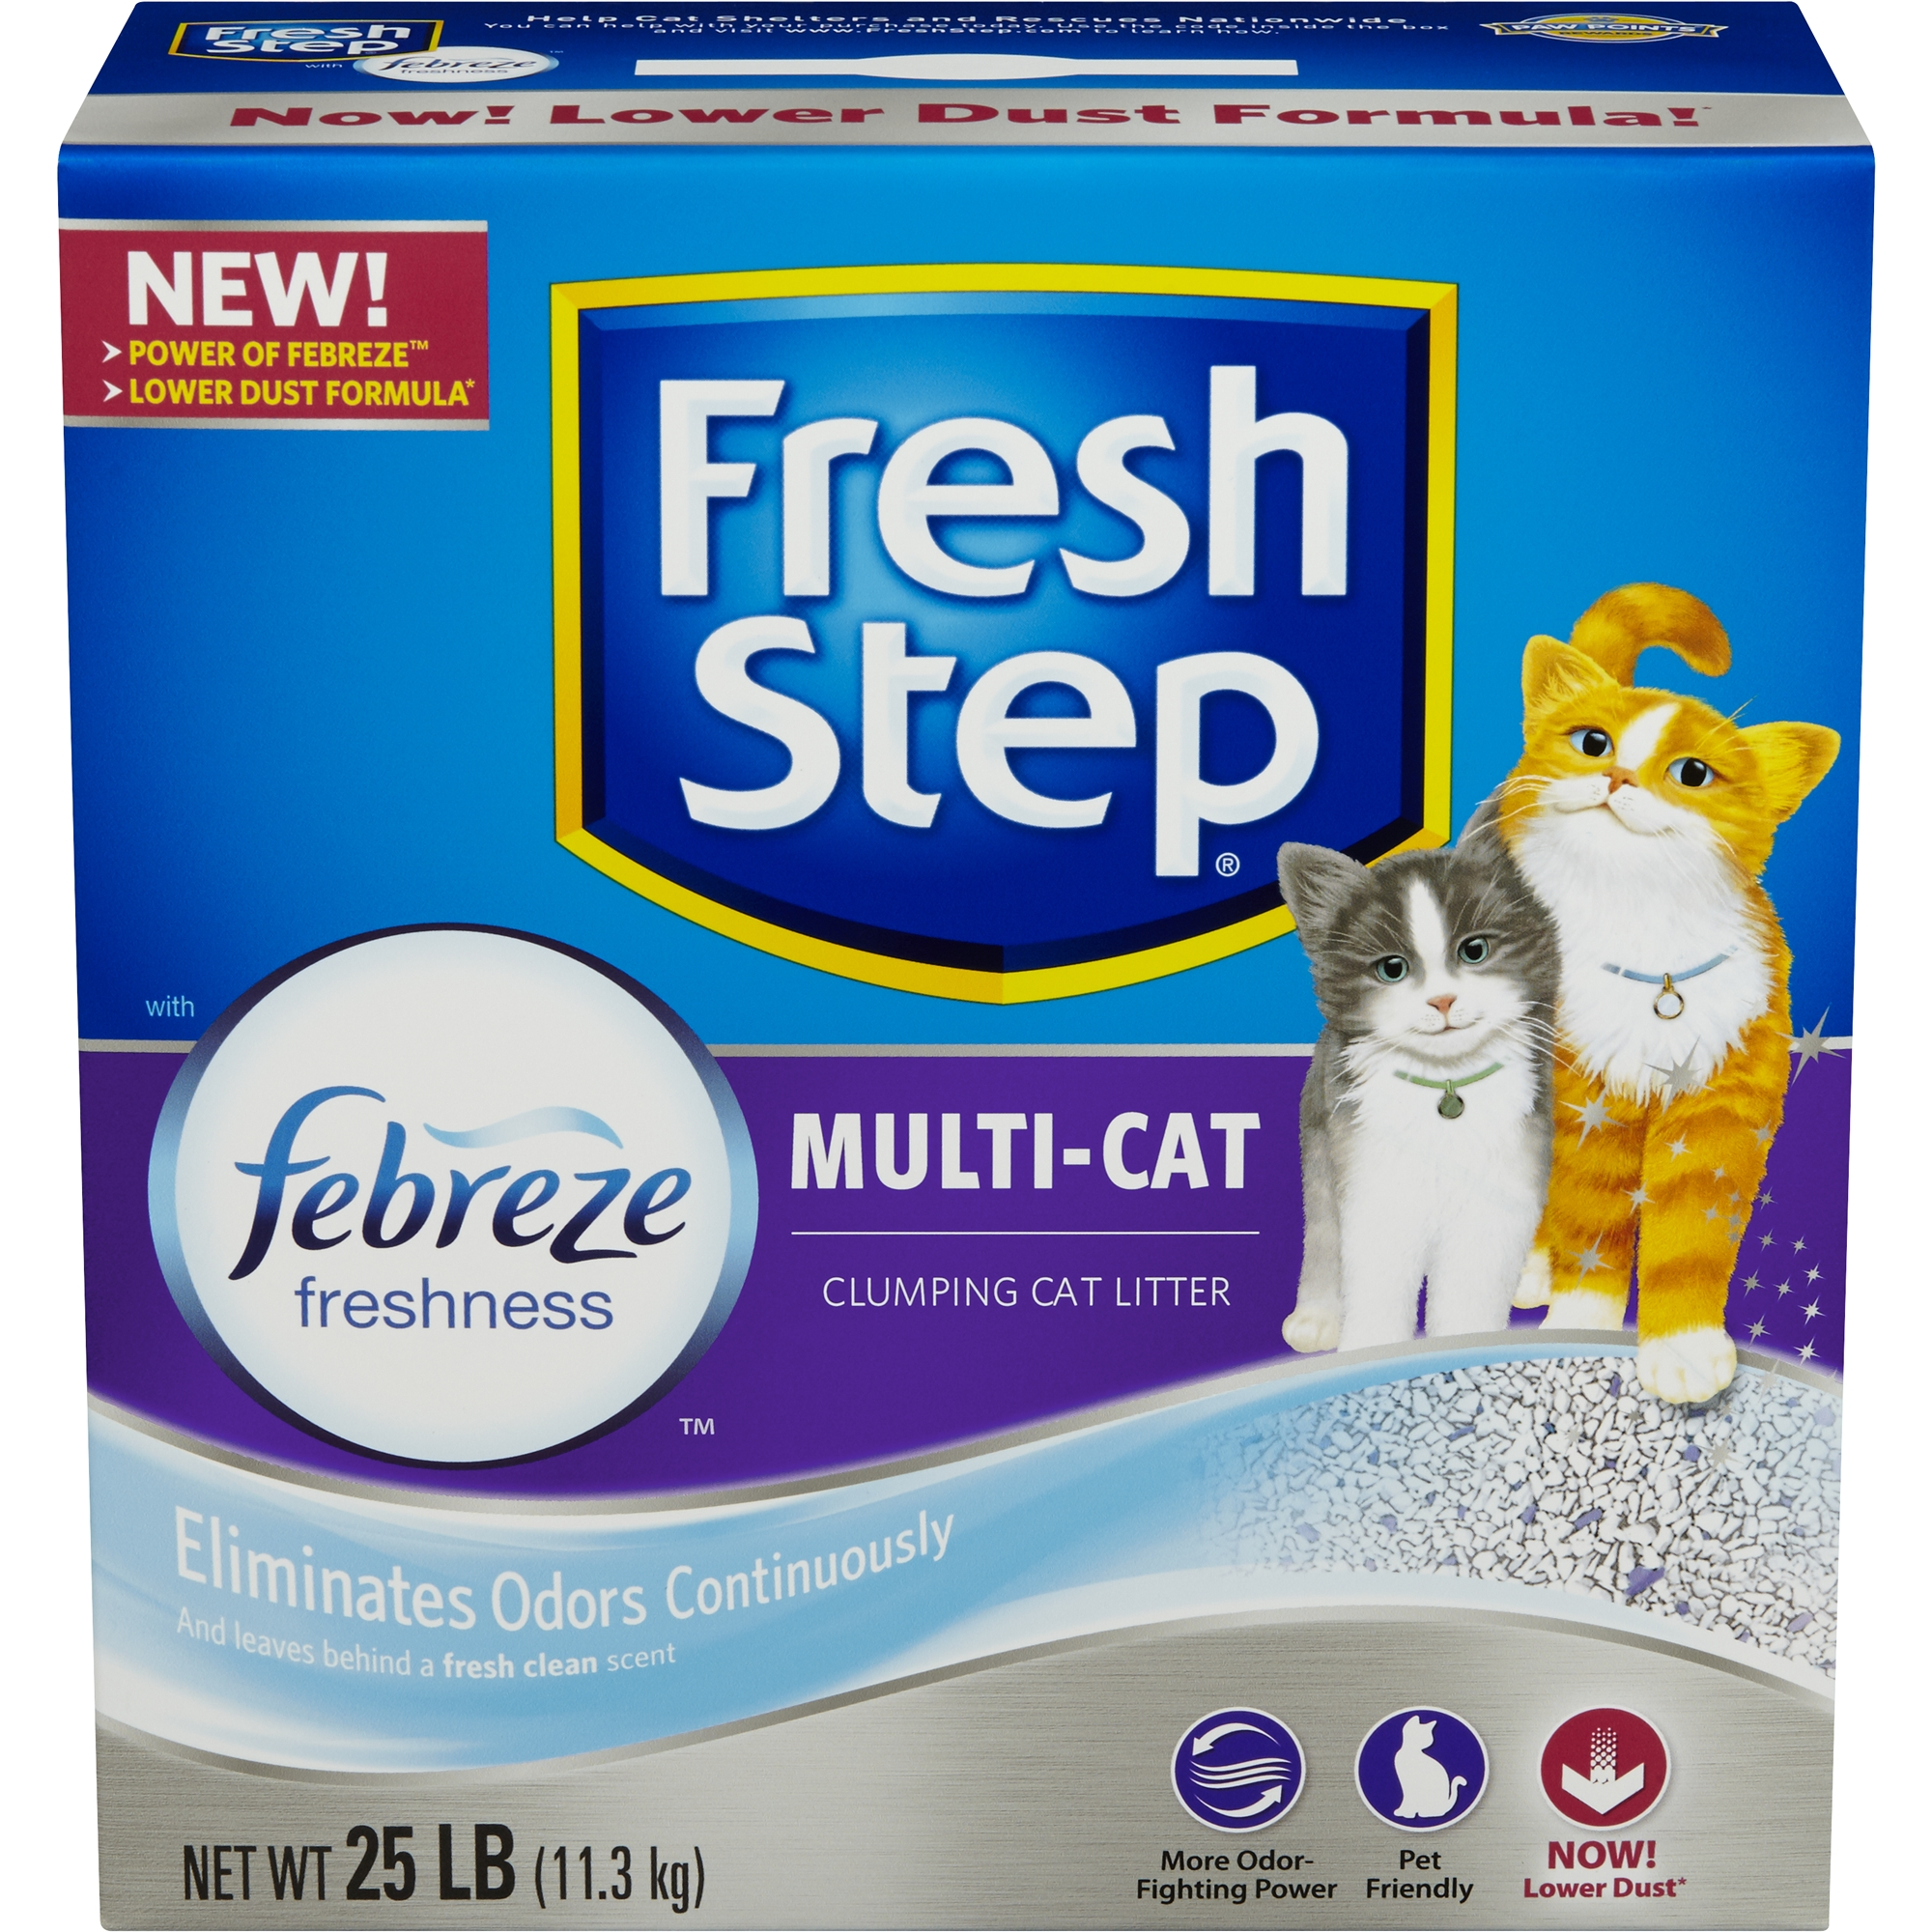 Purina Tidy Cats 24 7 Performance Clumping Cat Litter 20 Lb Jug